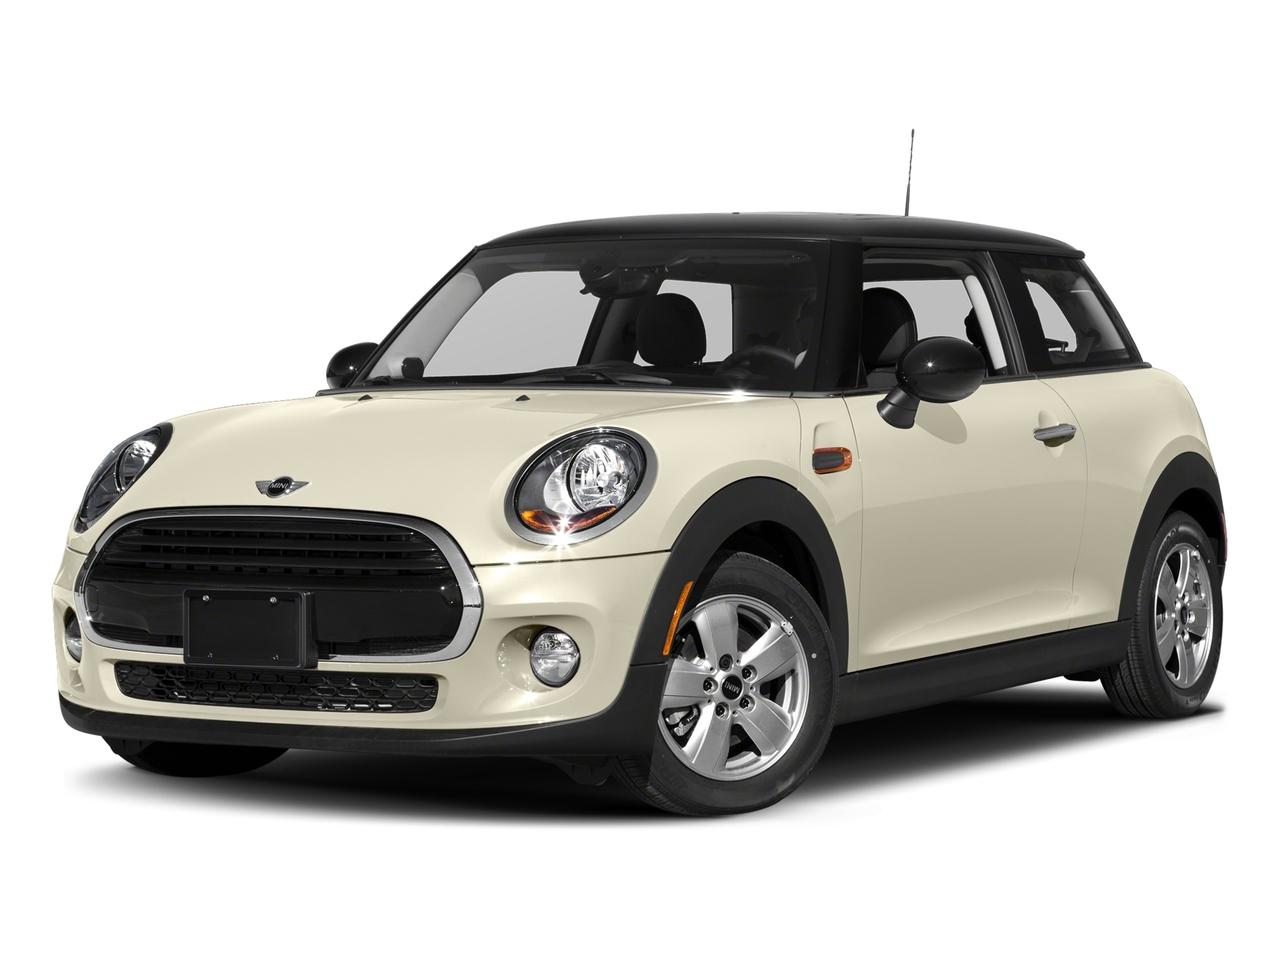 2017 MINI Cooper Hardtop 2 Door Vehicle Photo in Pleasanton, CA 94588